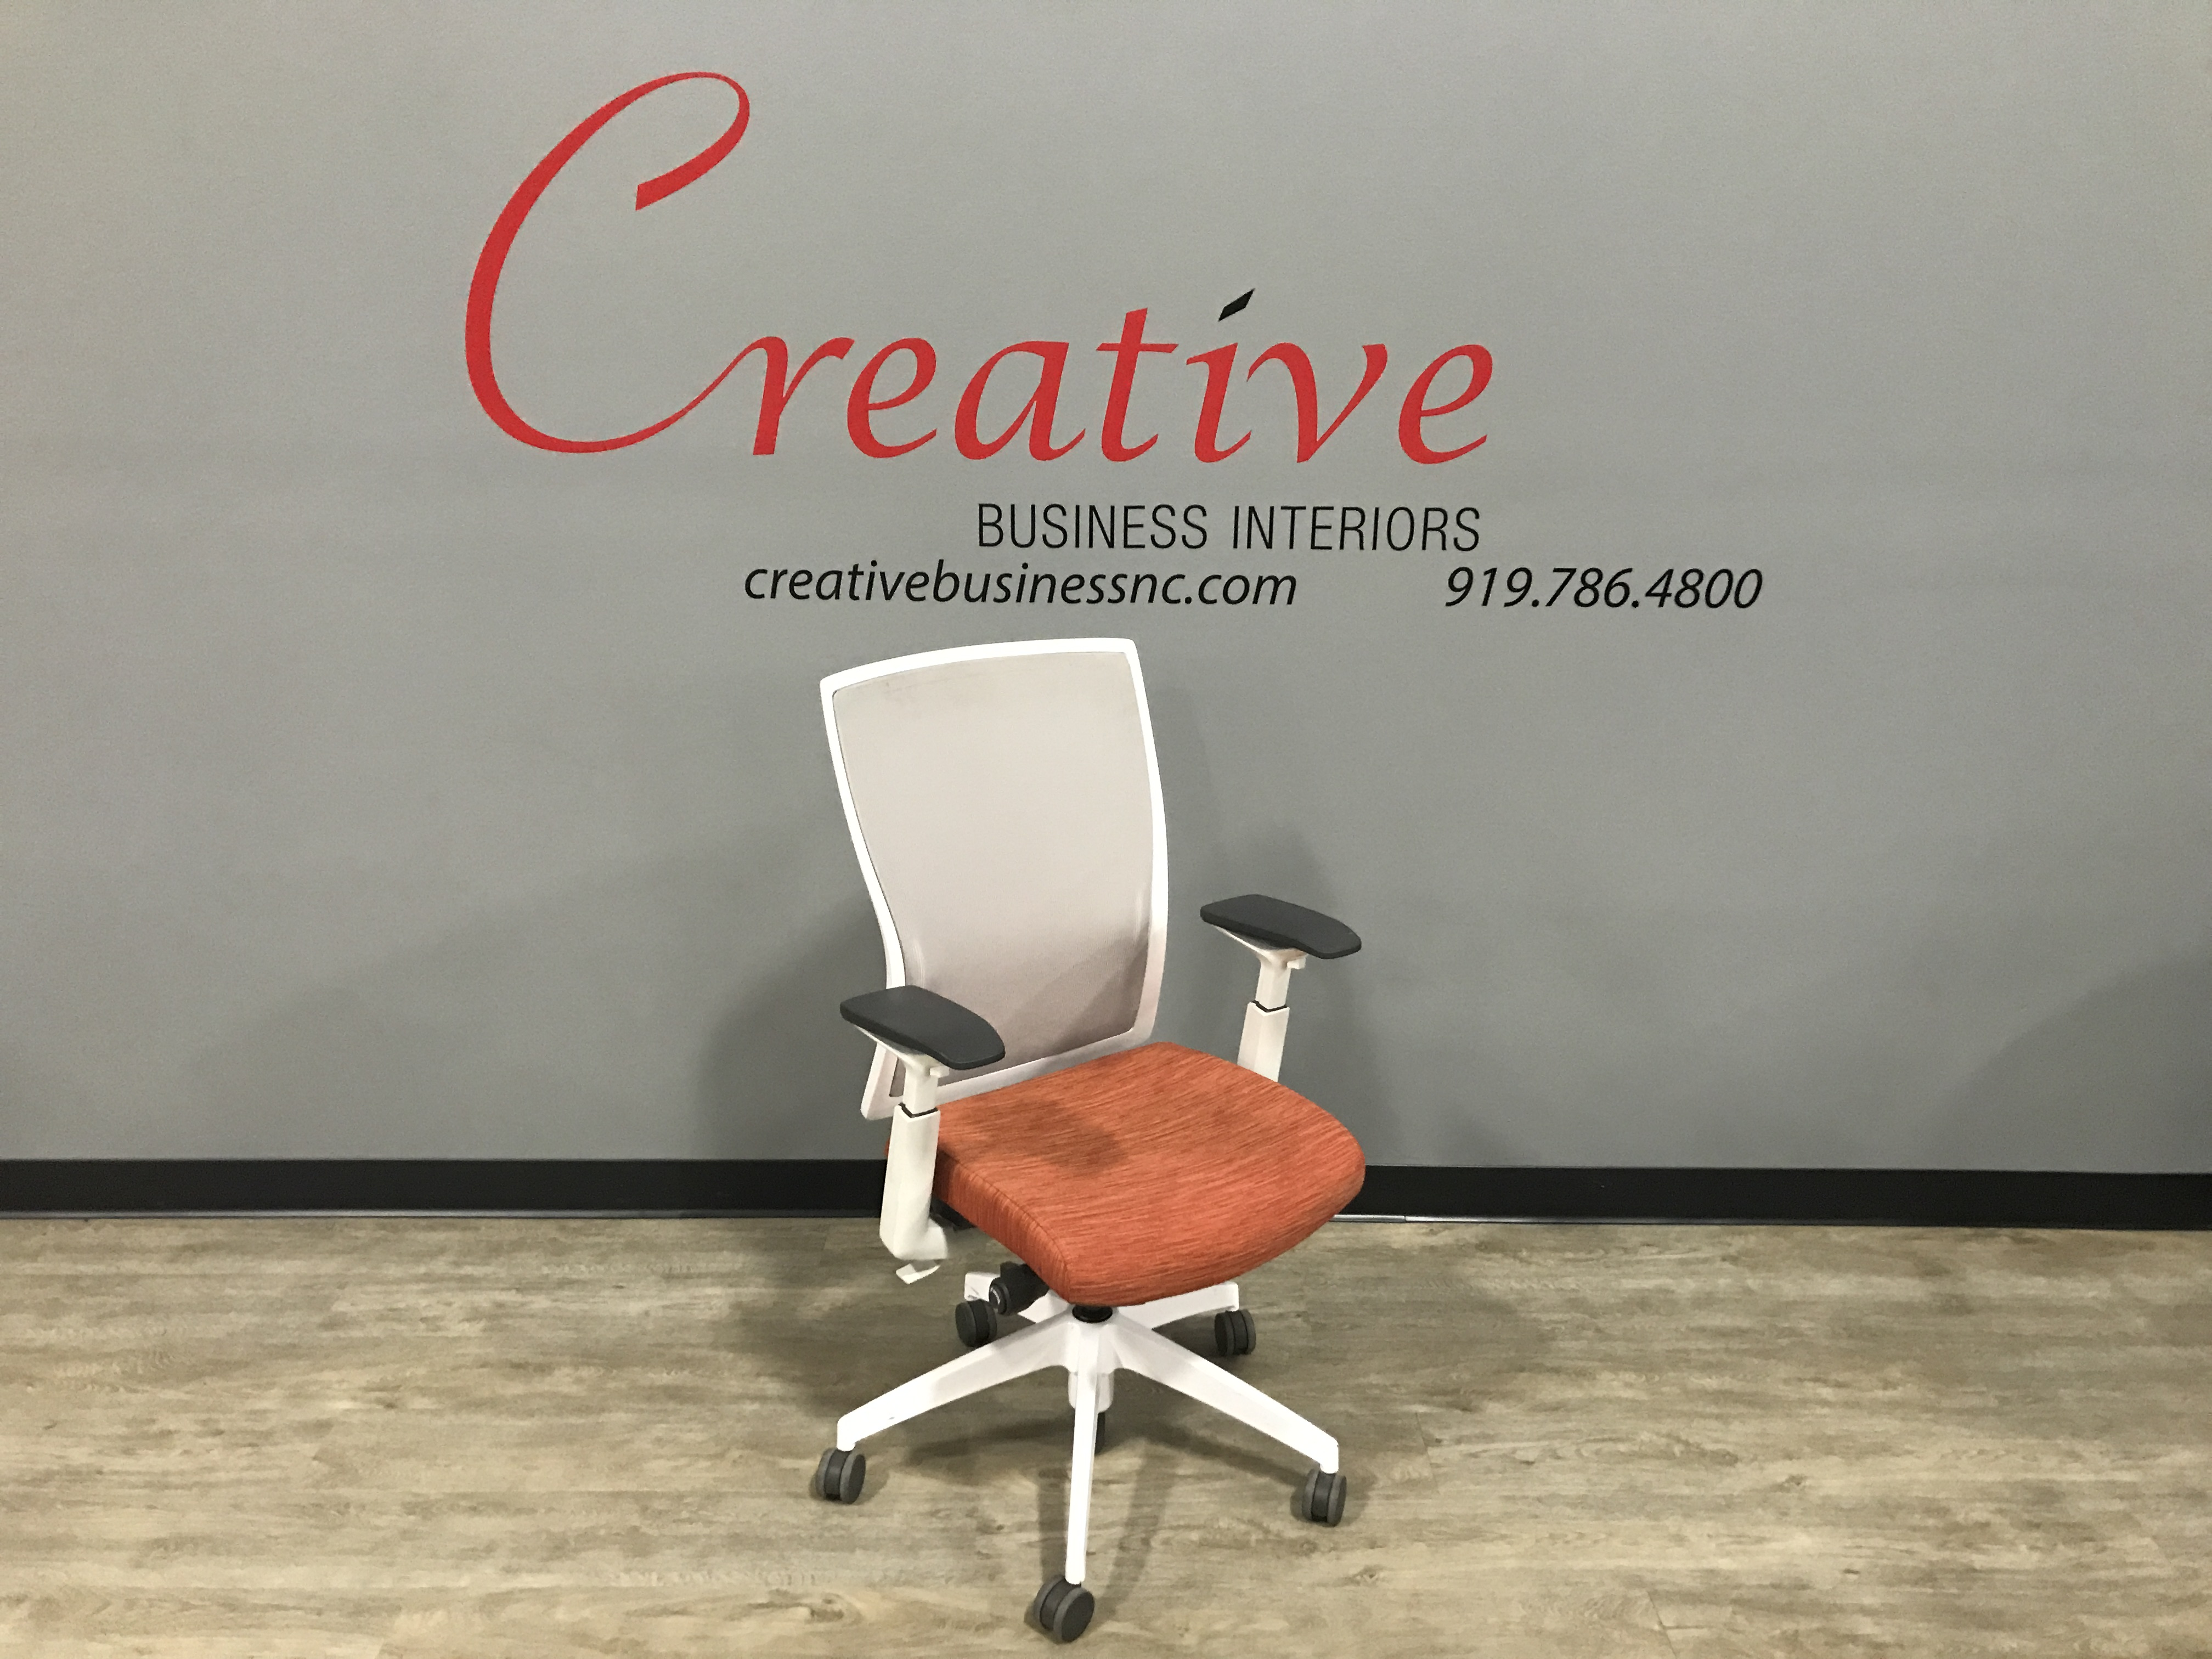 posture promoting chair quinton wheelchair sitonit exemplis task st 181023 creative business interiors